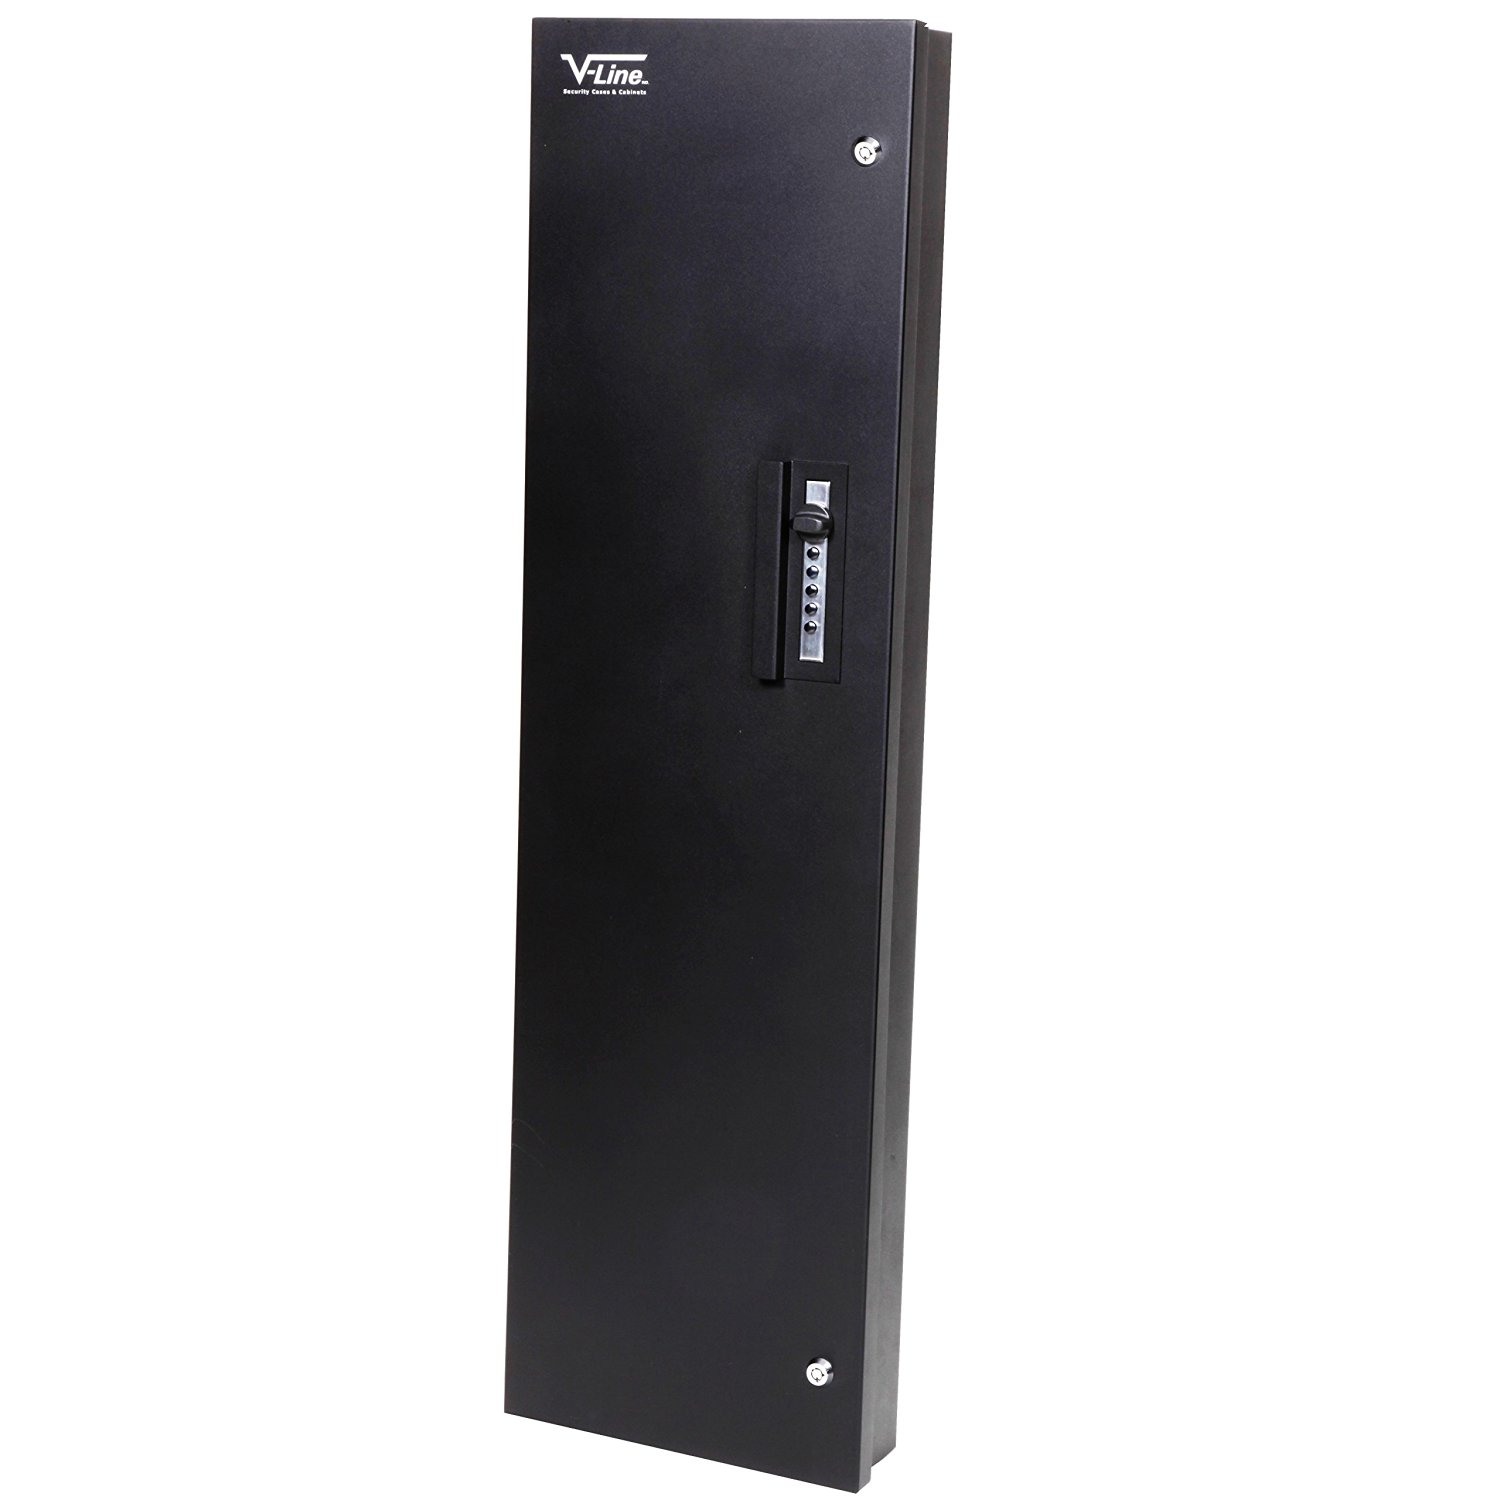 the V-Line Quick Access Keyless Long Gun Safe (Black, 42-Inch) shown here is another 2-gun rifle safe